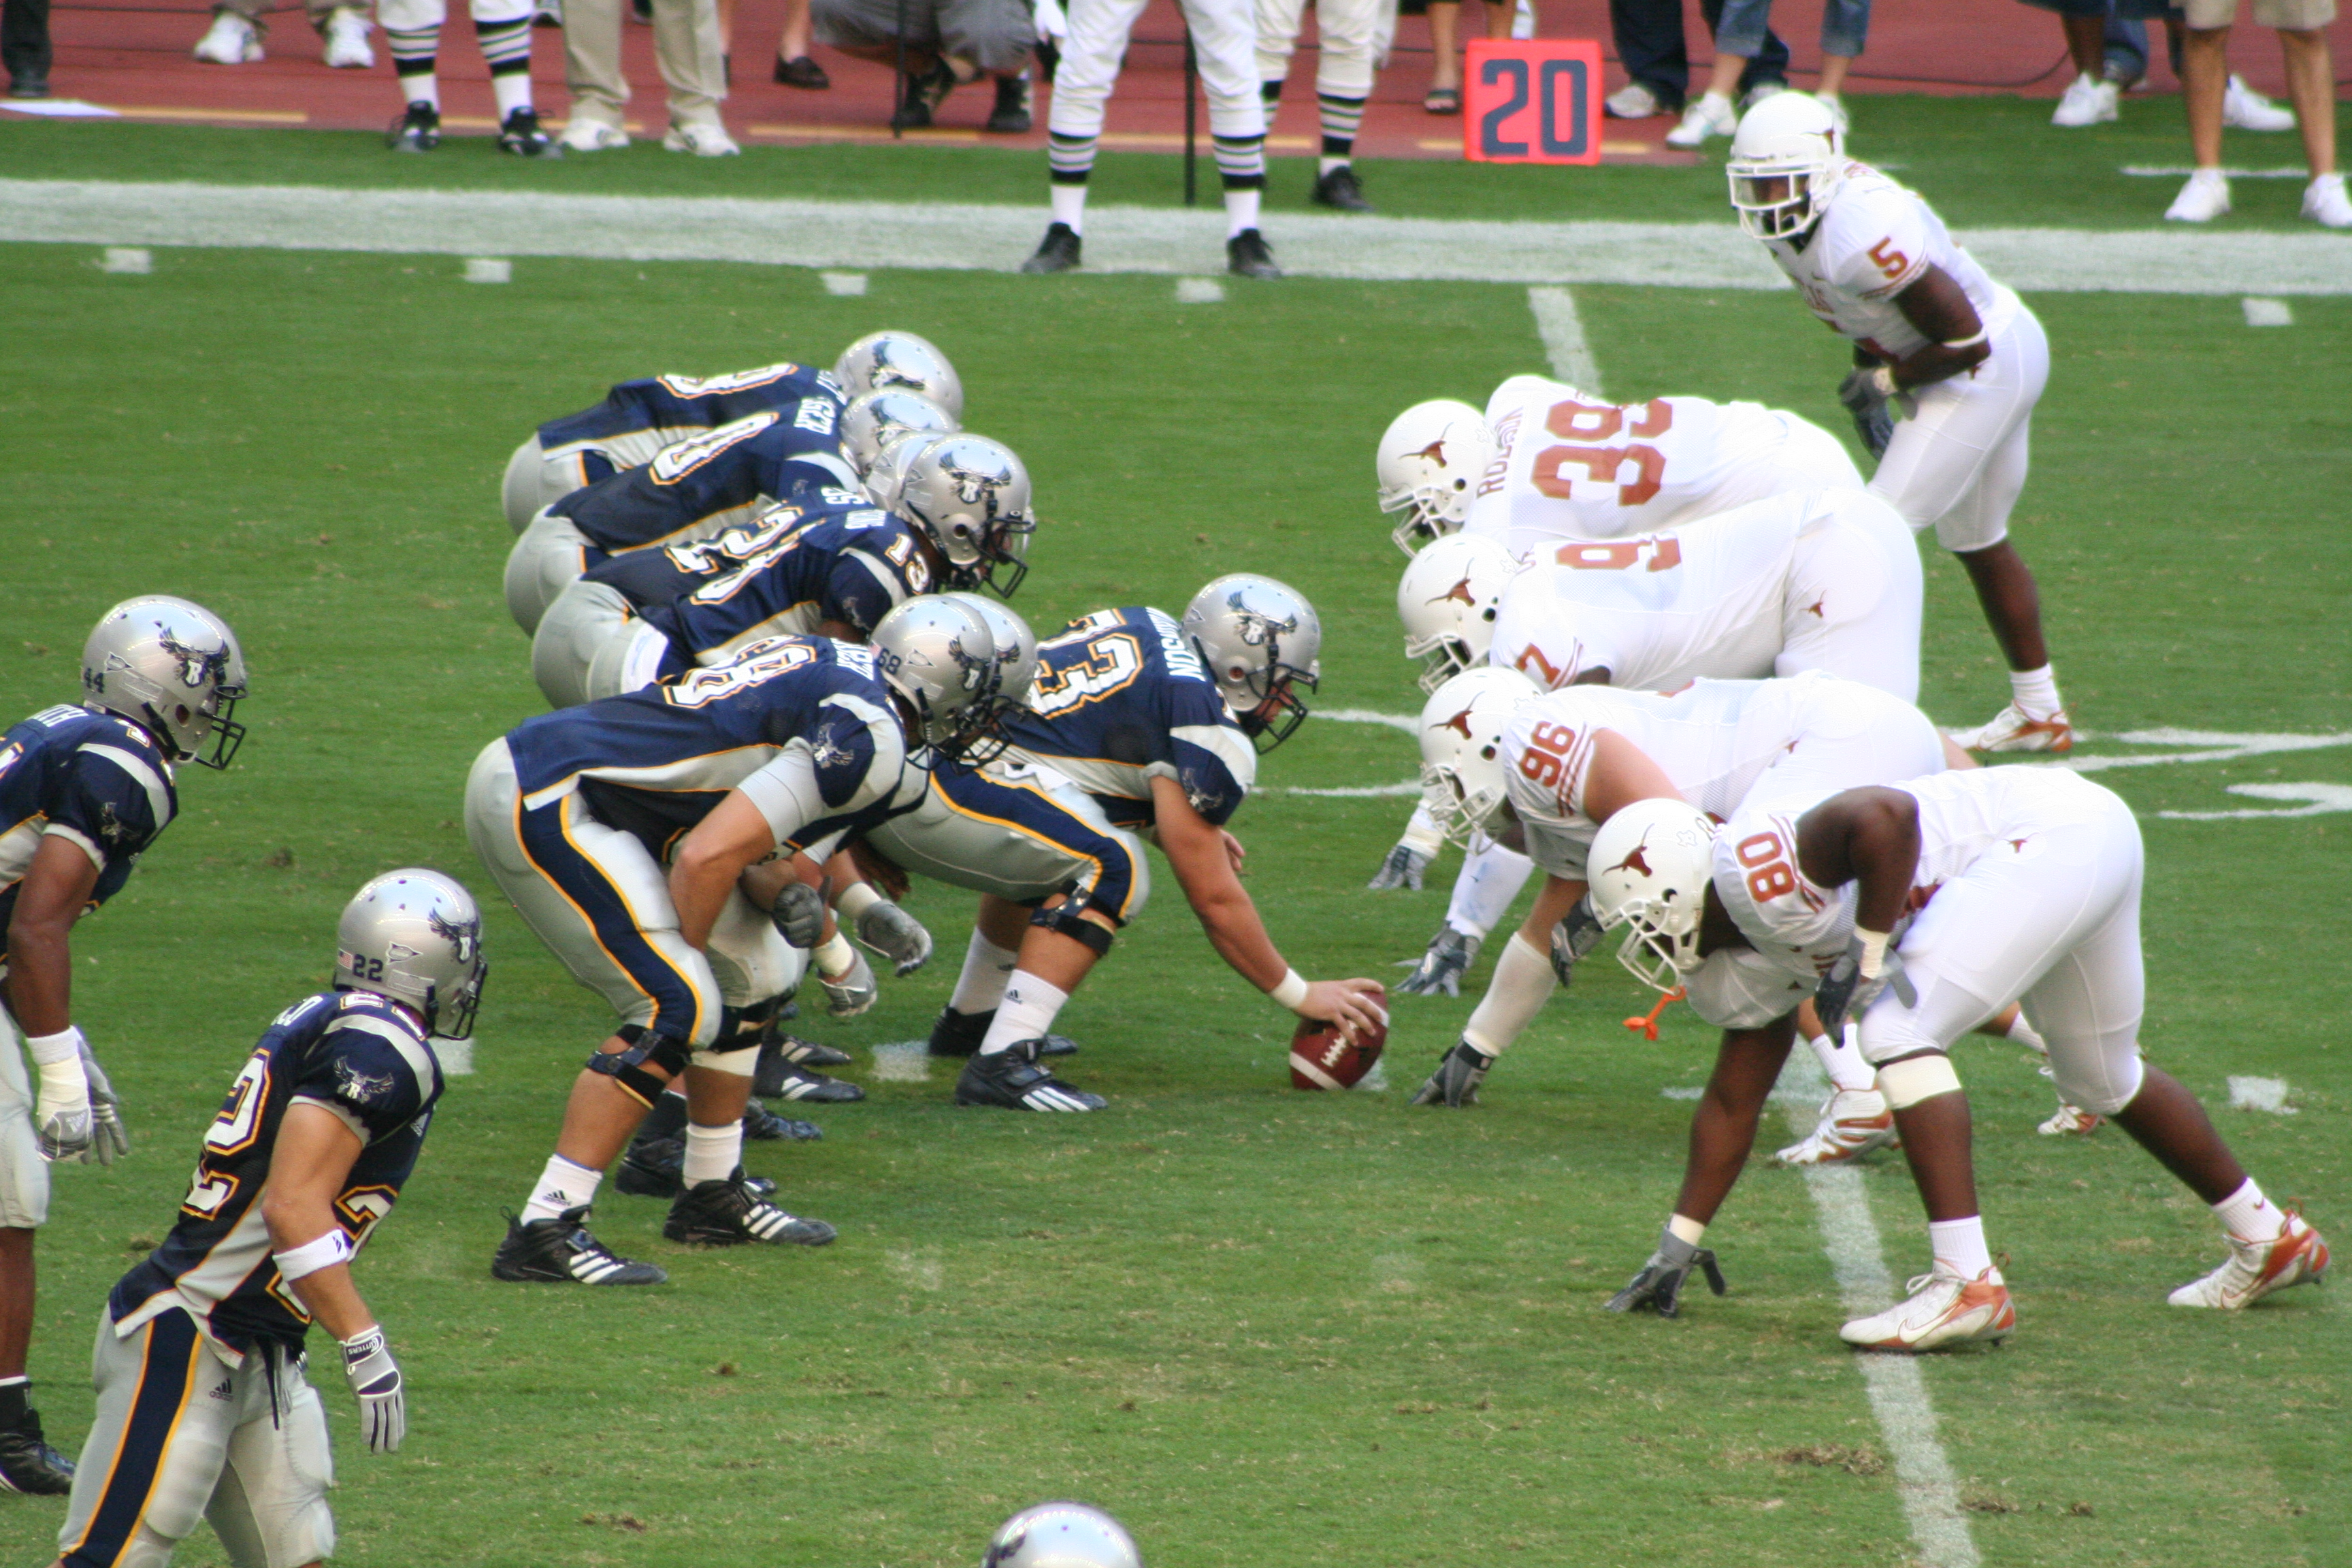 File:college football - rice owls vs texas longhorns